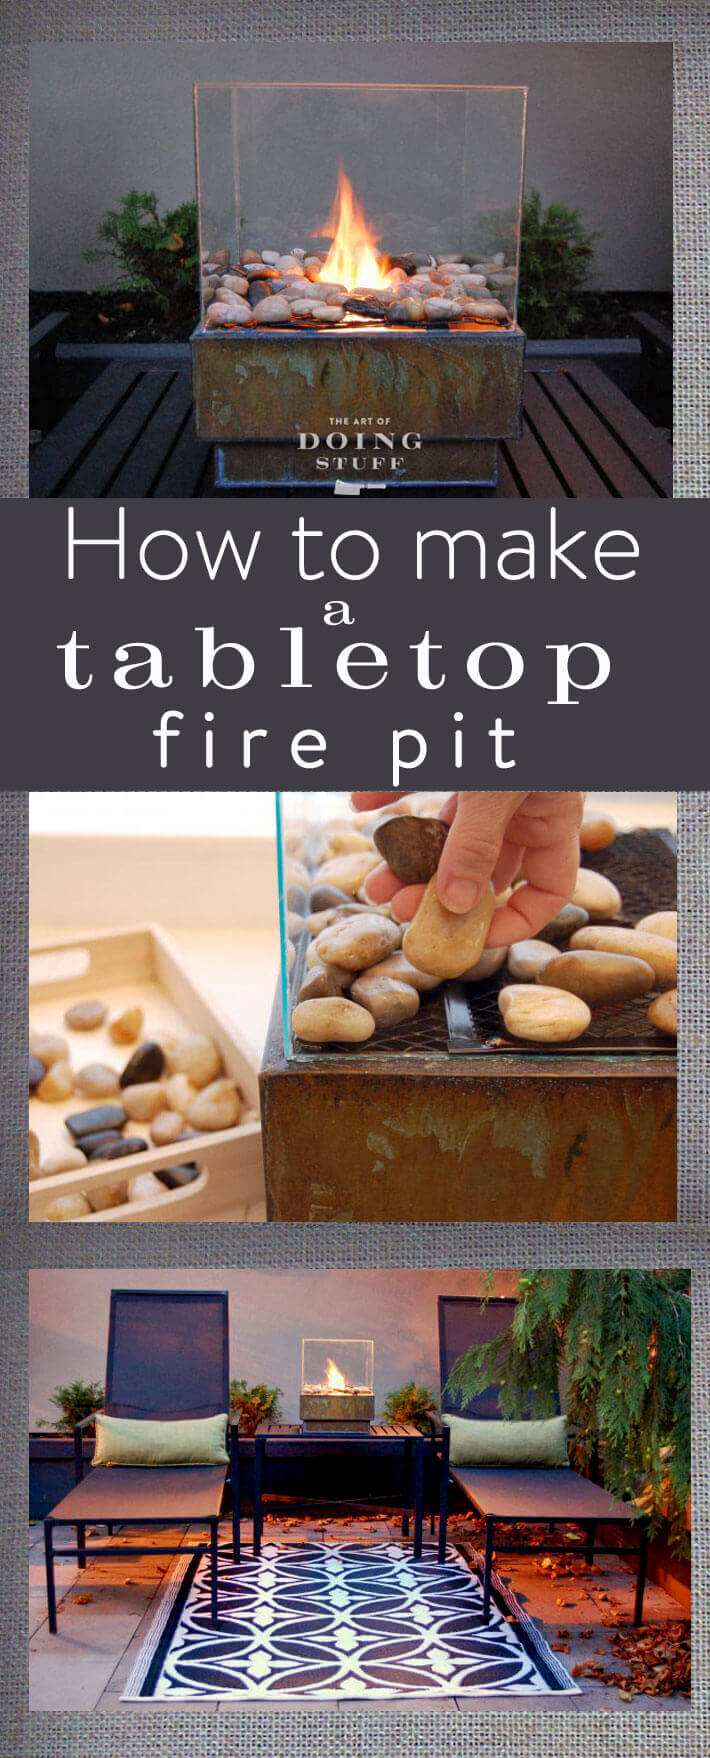 Creative fire pit ideas with pavers to make s'mores with your family